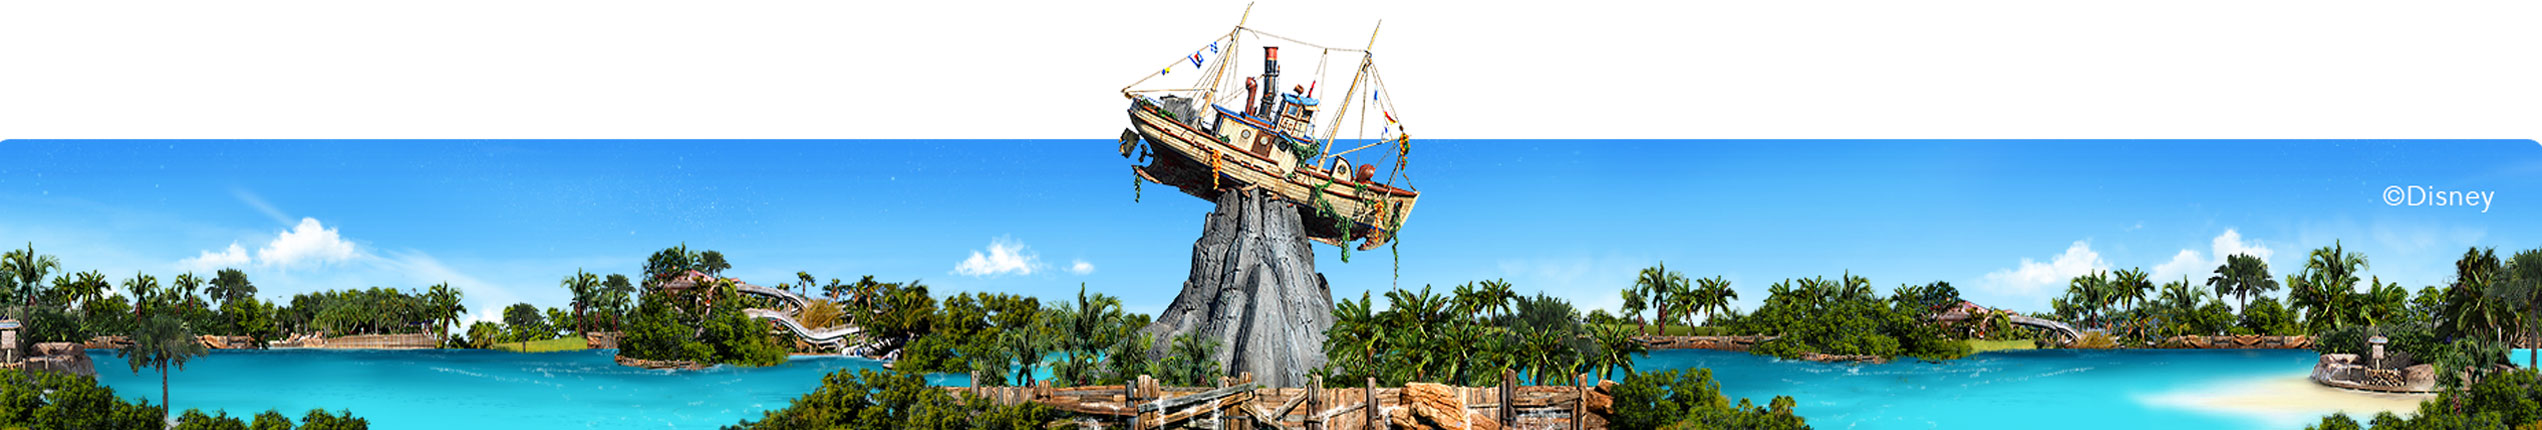 A panoramic view of a theme park or resort (Image #1)